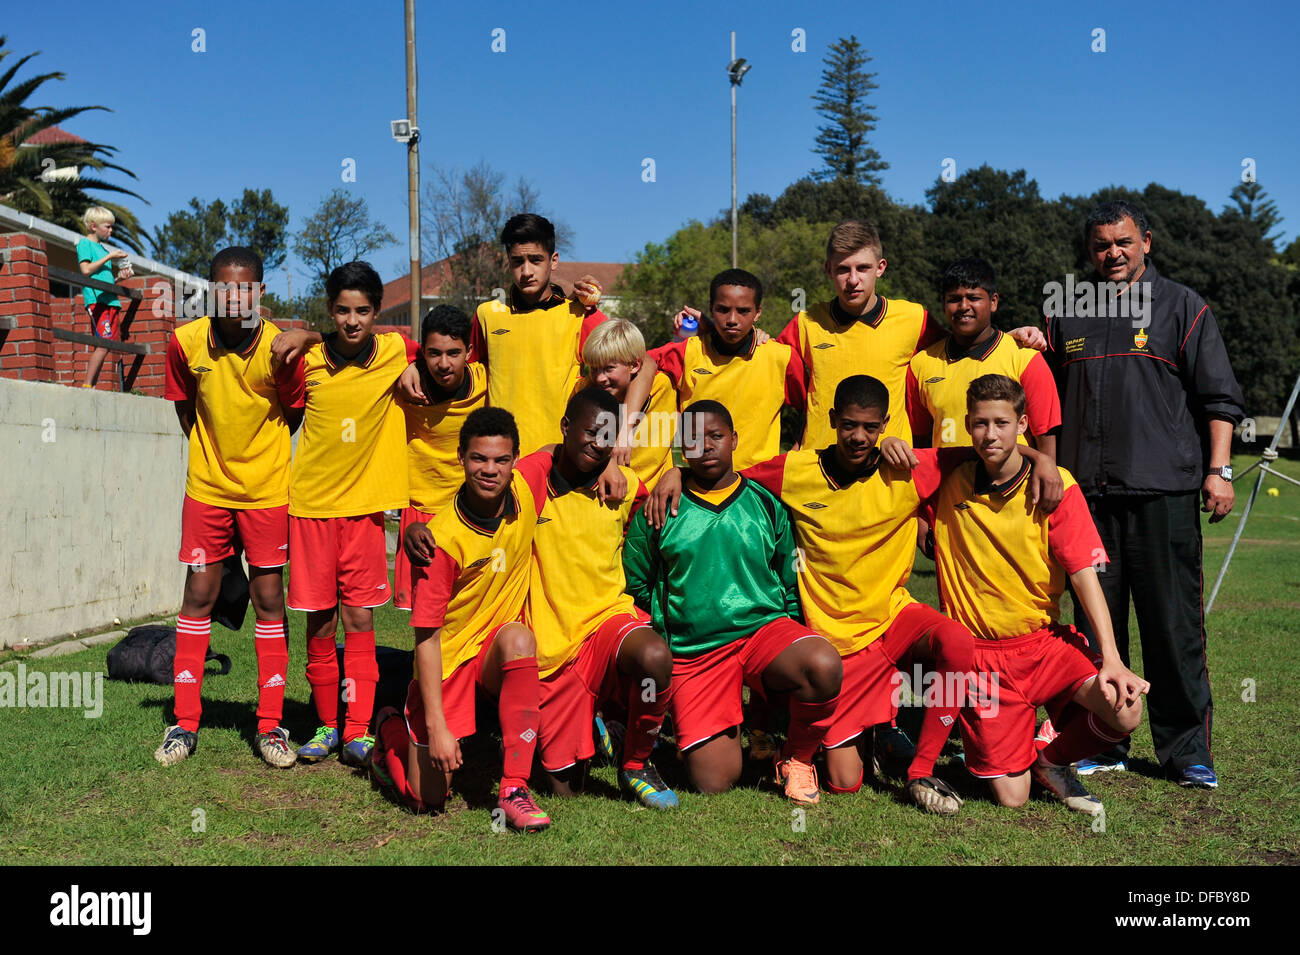 Under 15 Junior football player team with coach, Cape Town, Western Cape, South Africa - Stock Image